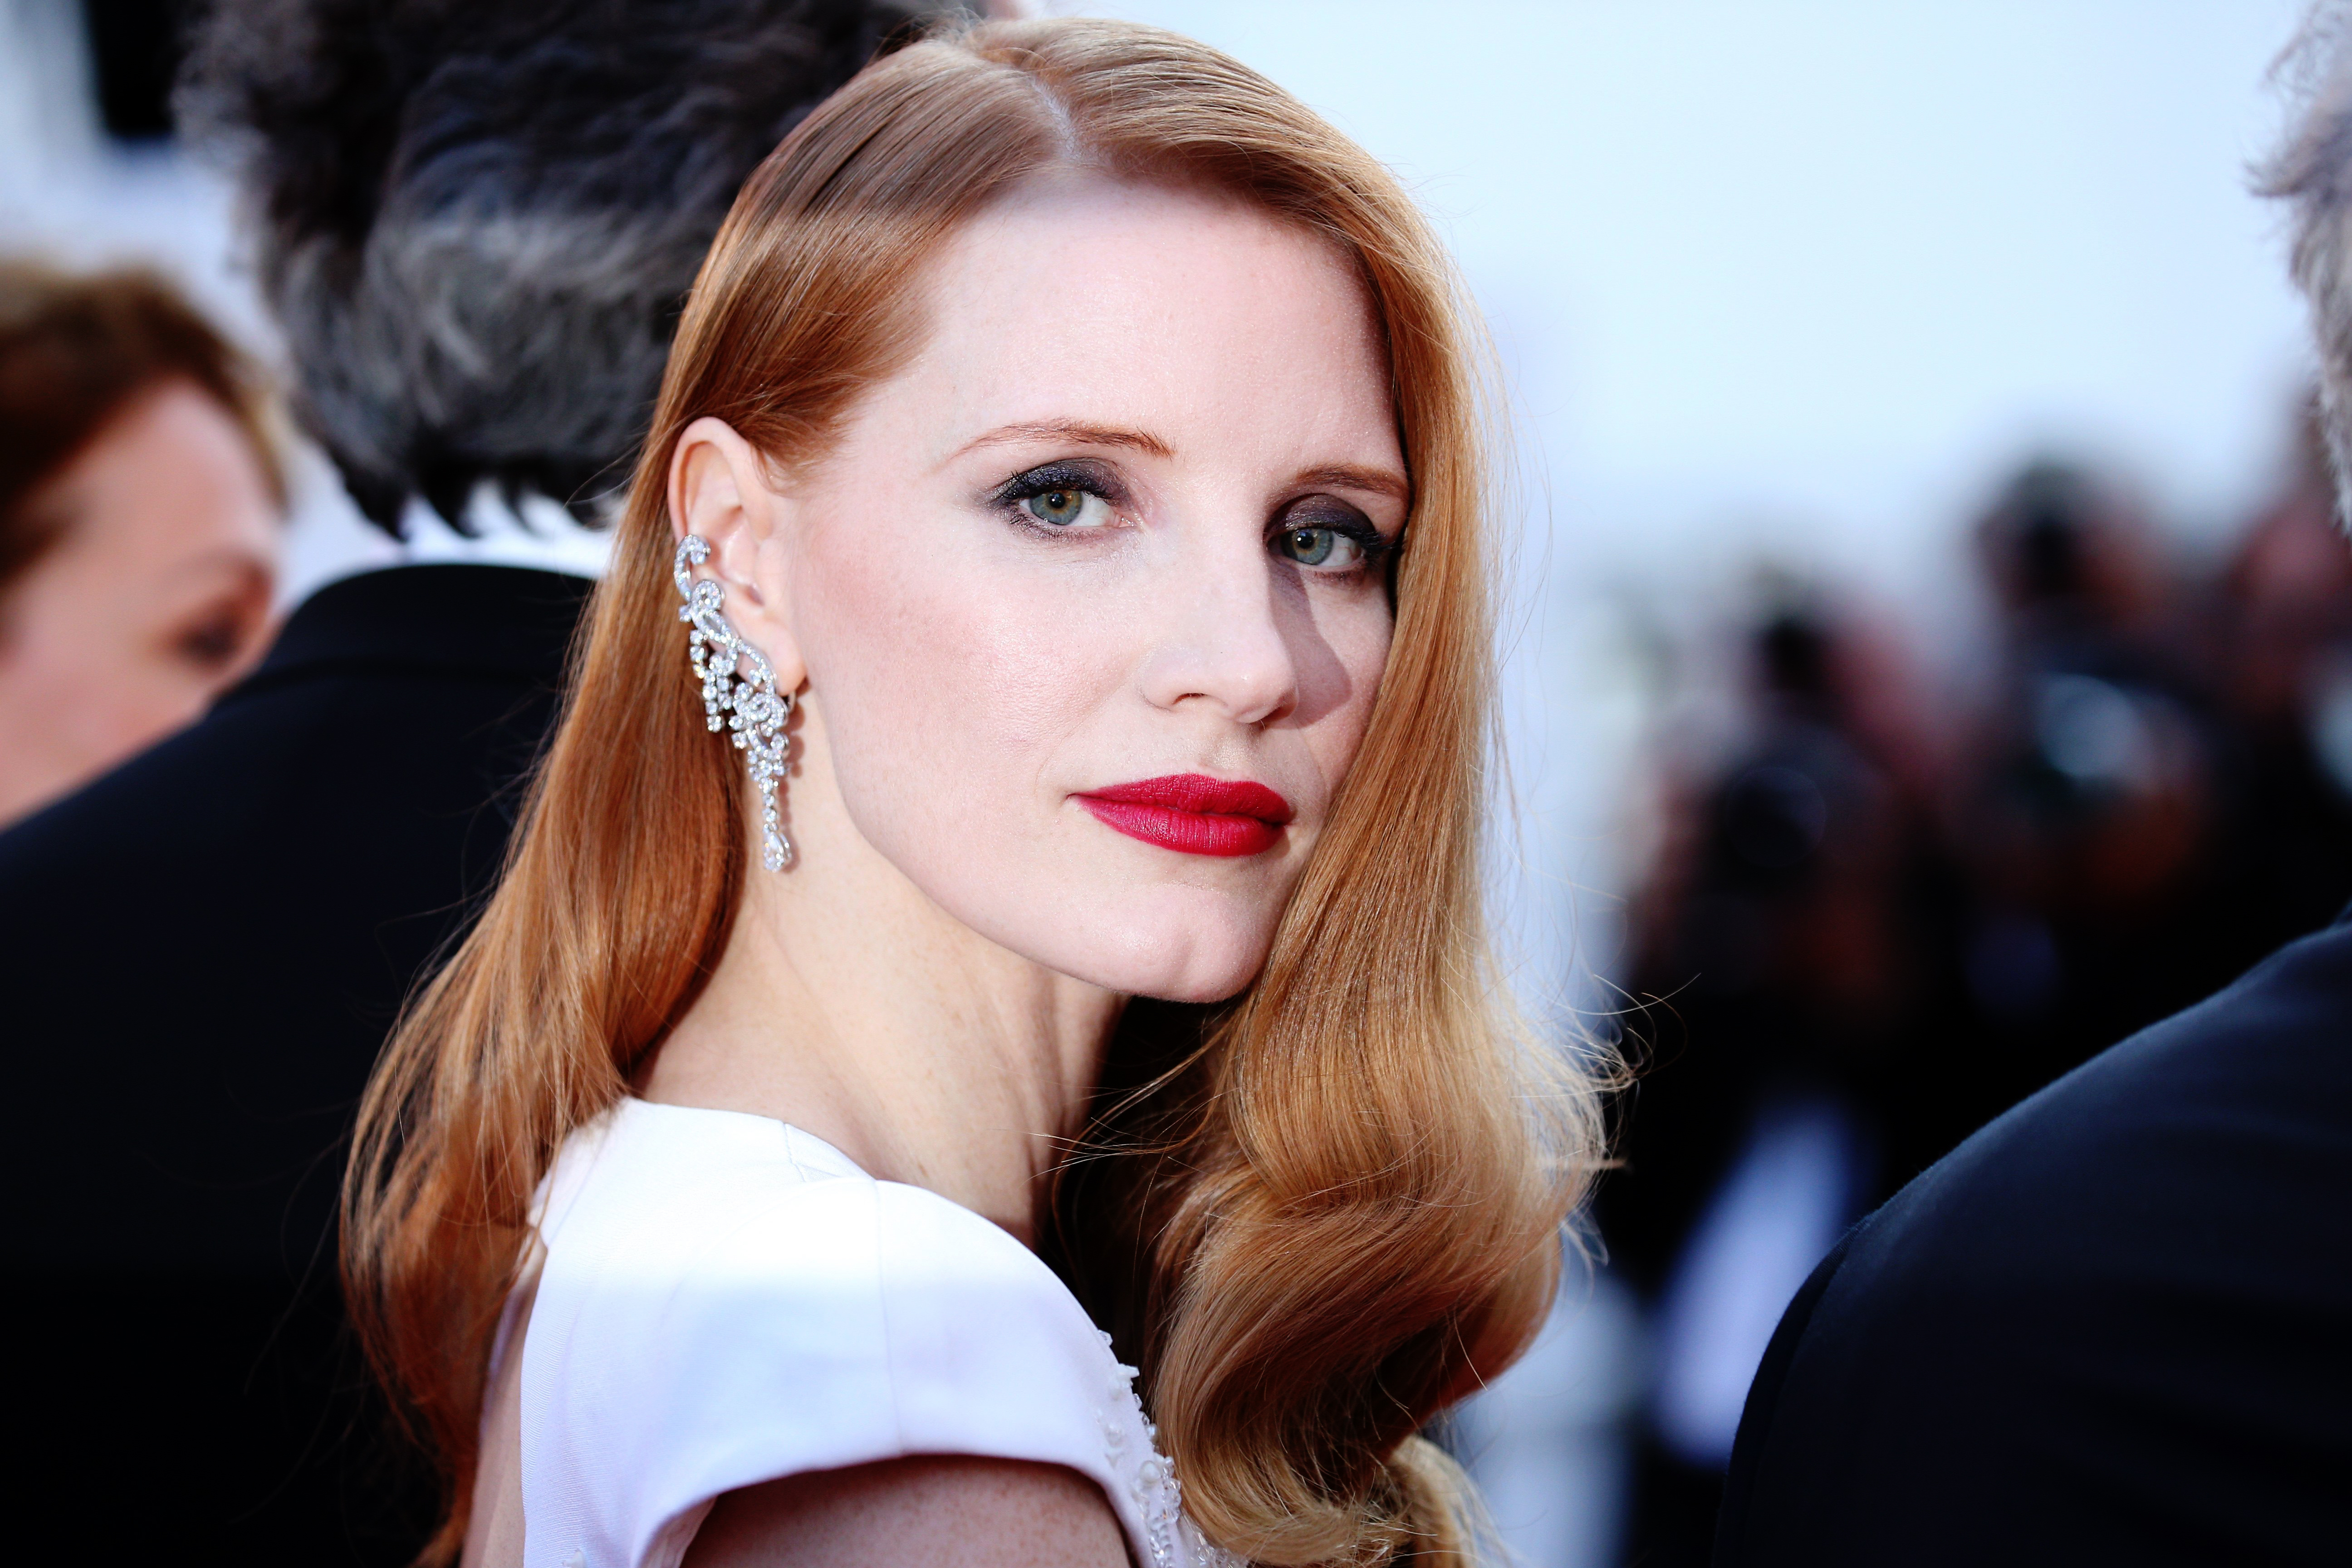 Fotos Jessica Chastain nudes (49 photos), Pussy, Hot, Twitter, lingerie 2020